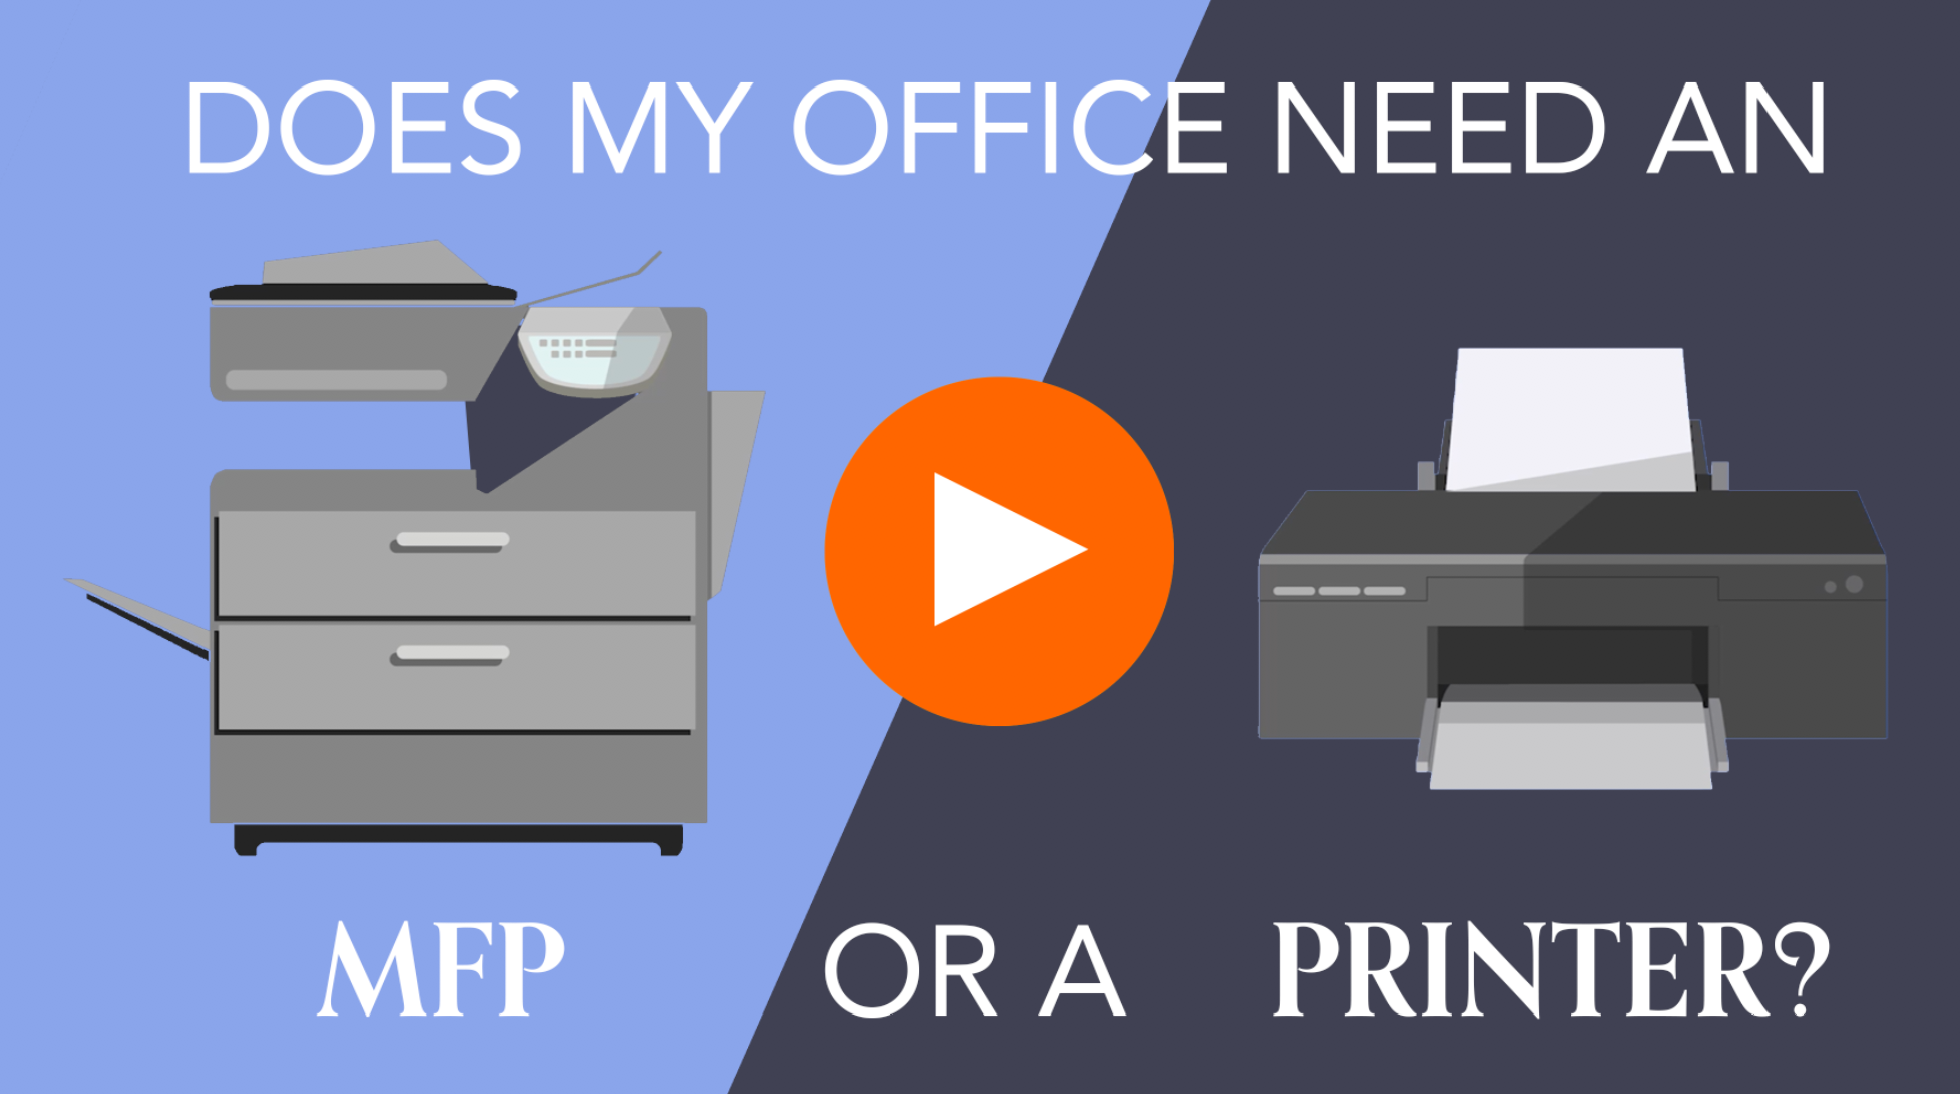 Does My Office Need an MFP or a Printer 1